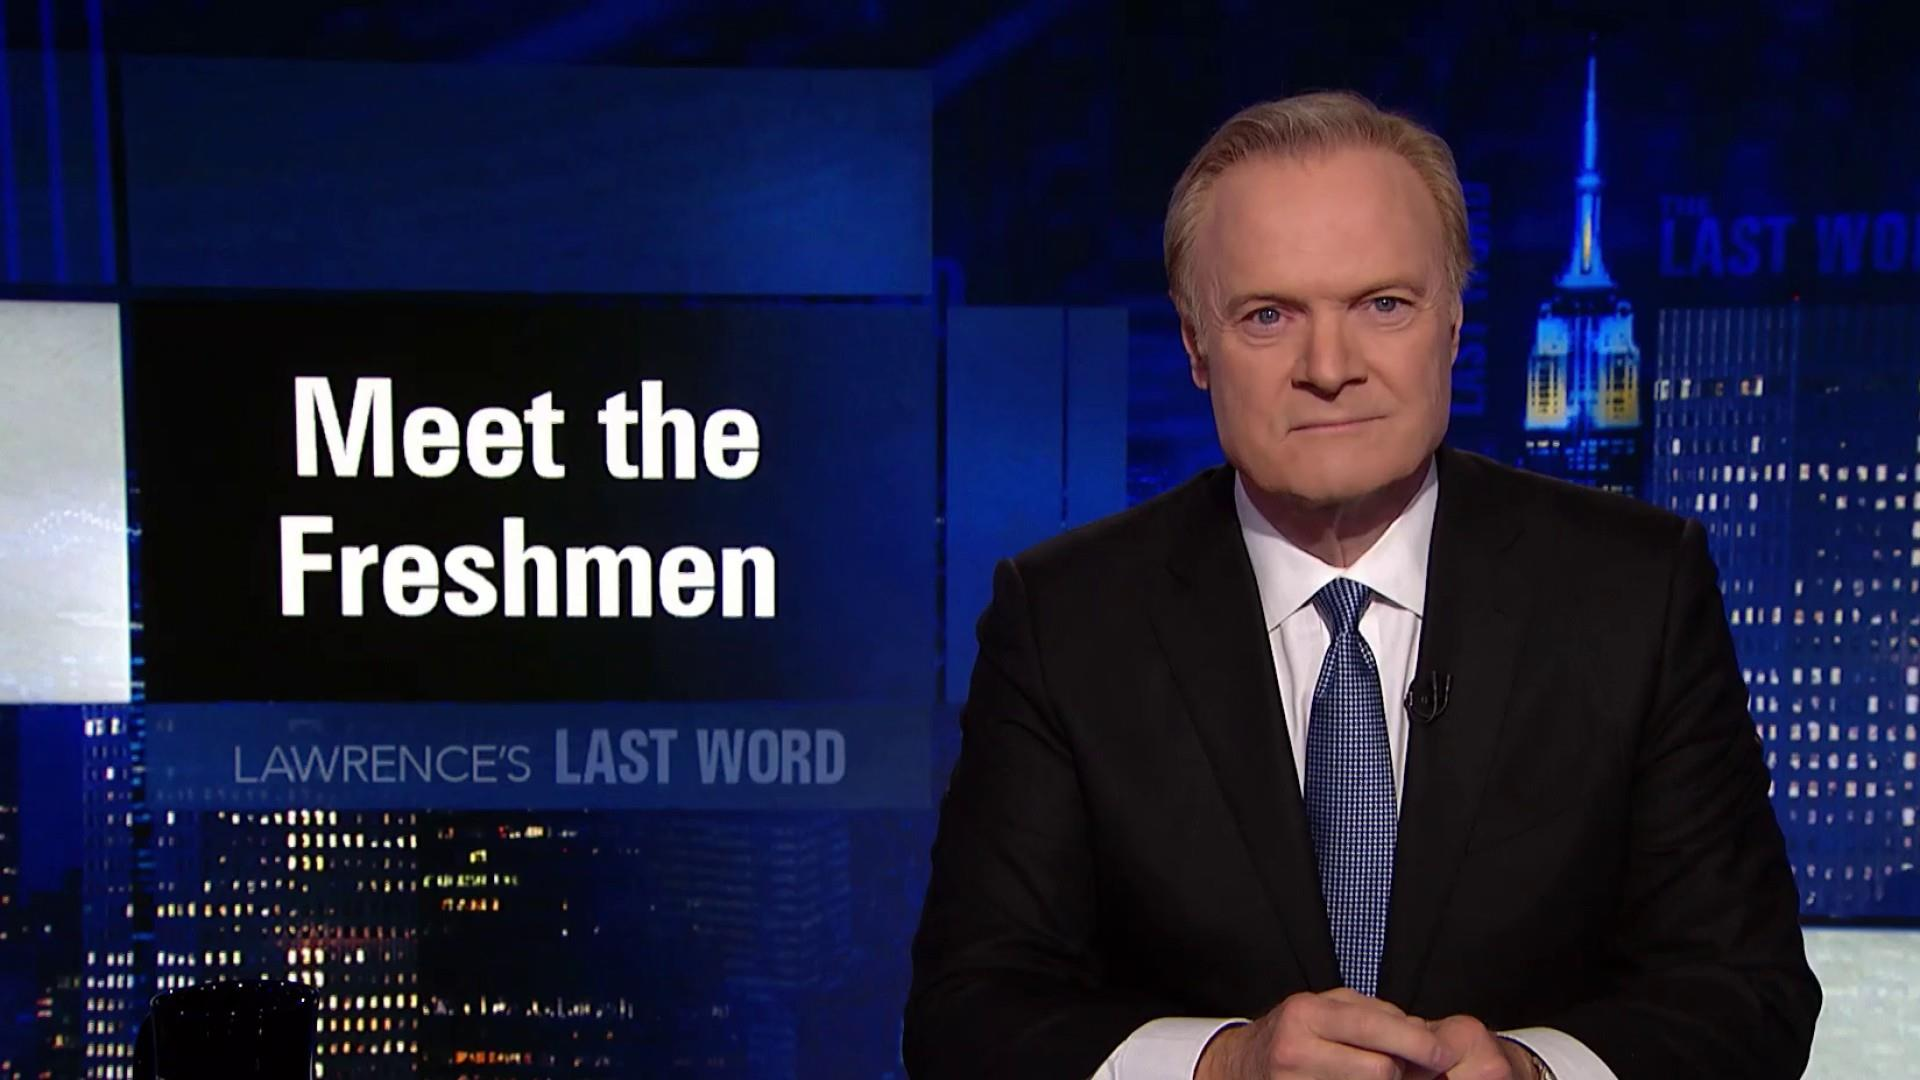 Lawrence's Last Word: meet the freshmen